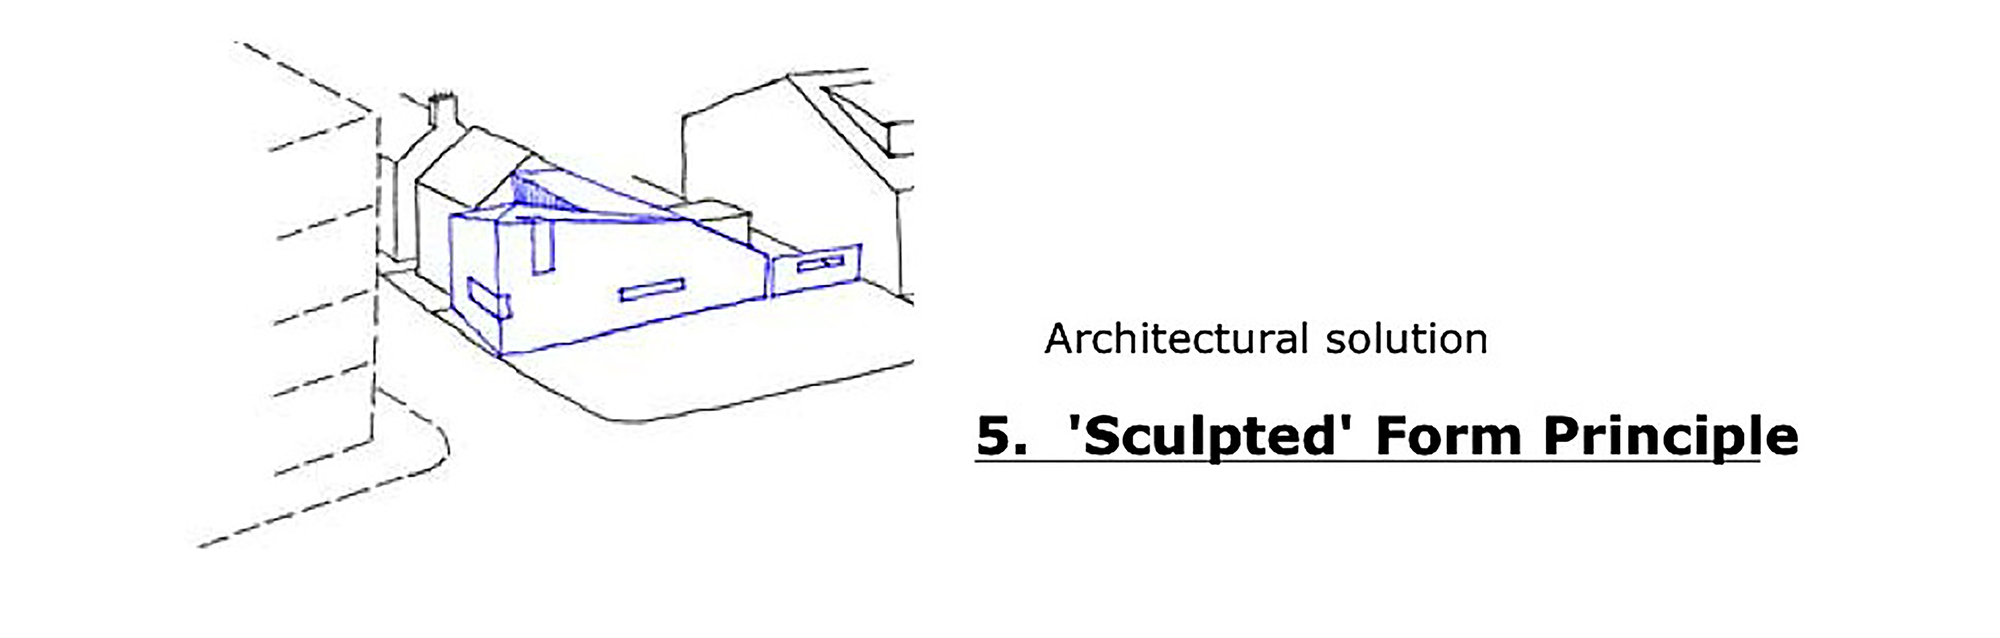 Stirling_House-Mac-Interactive_Architects-27.png